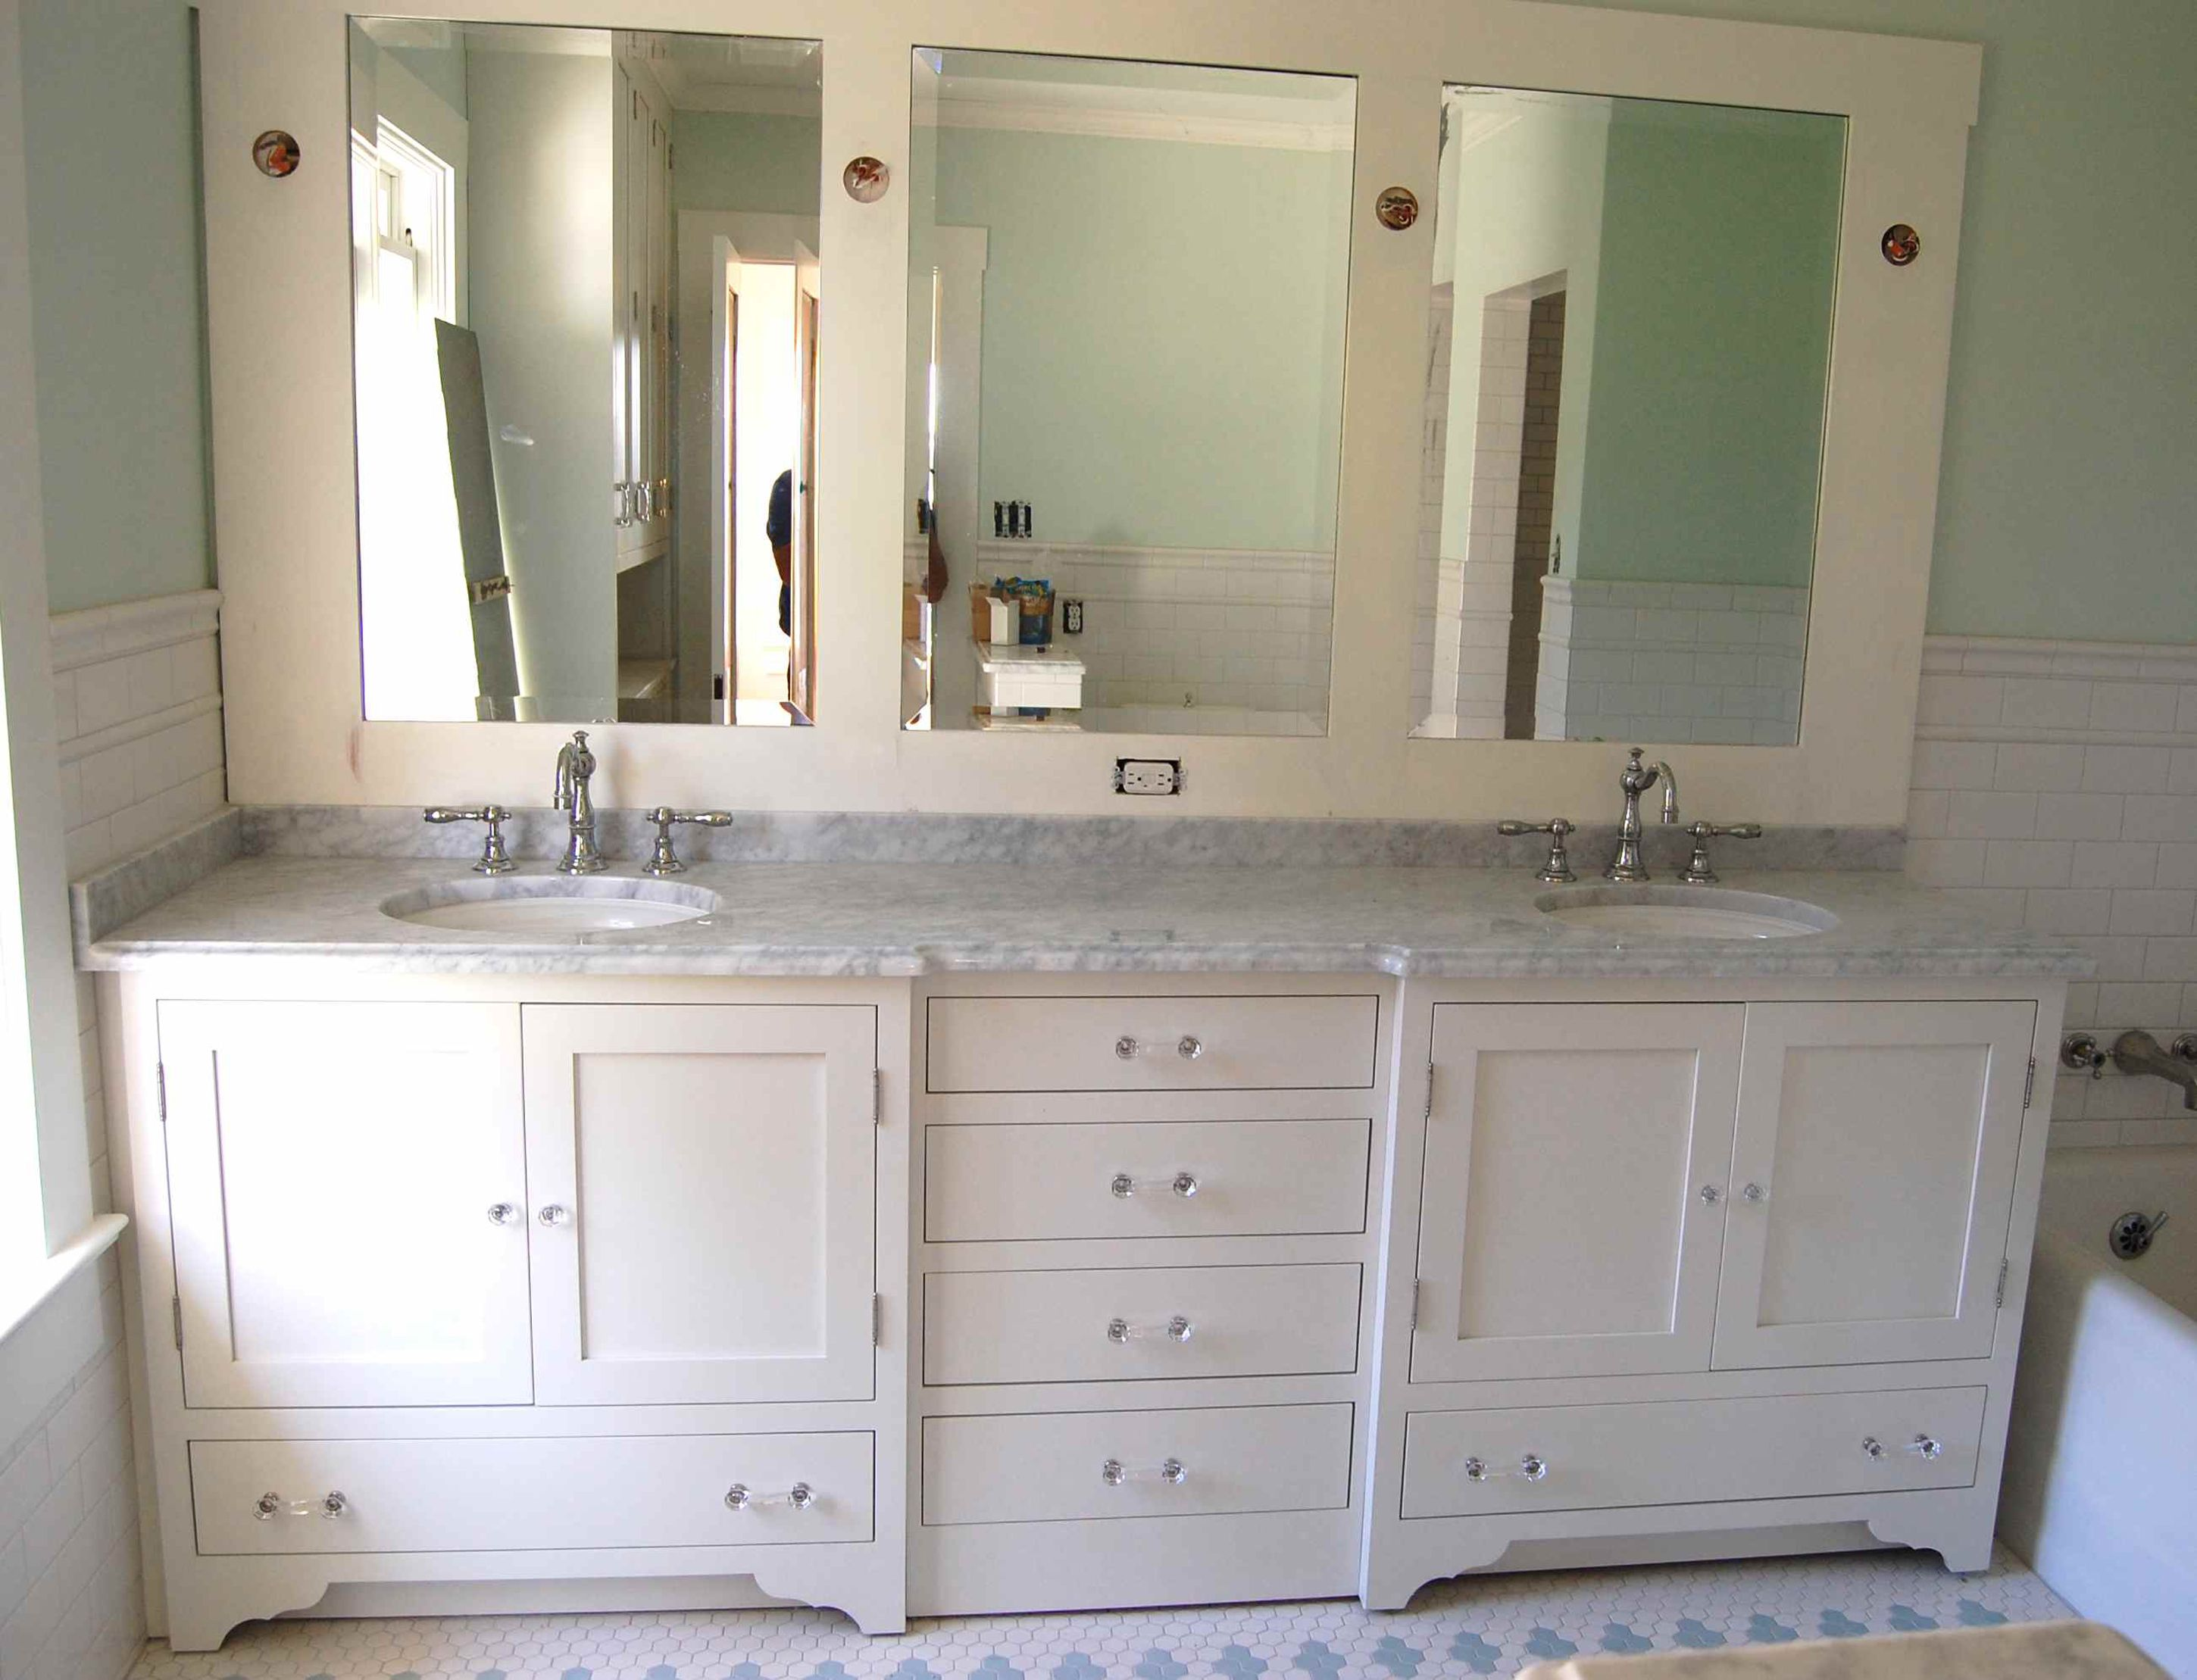 Bathroom Vanities Design Ideas Prepossessing Lovable White Bathroom Vanity Cabinet Design Idea With Gray Review